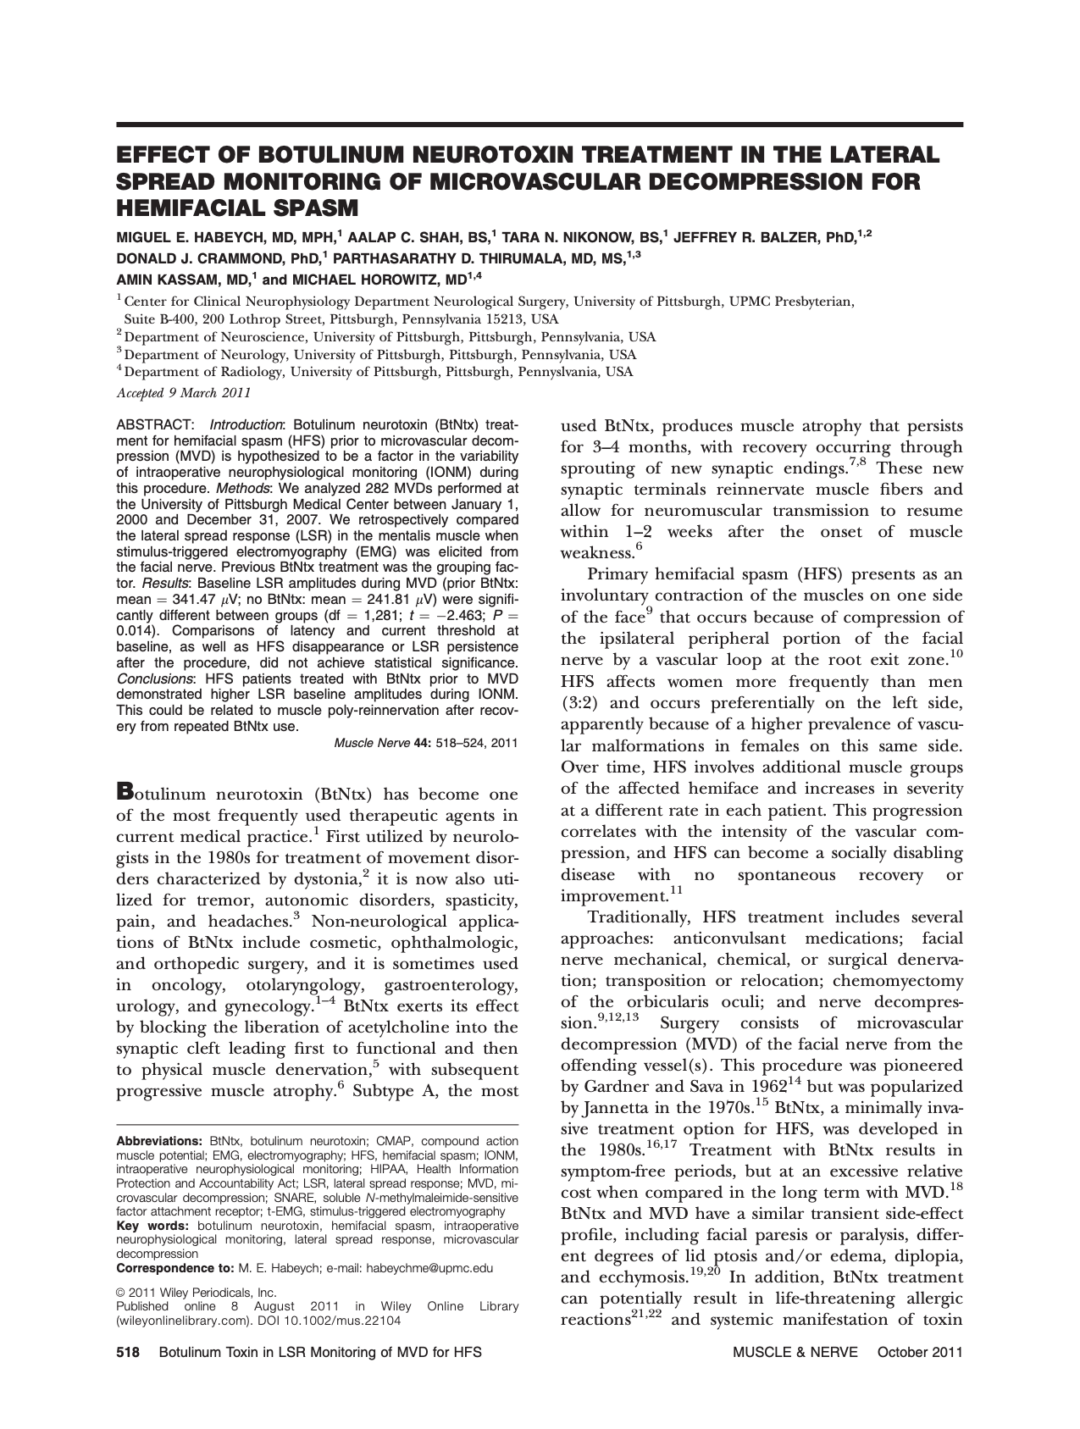 EFFECT OF BOTULINUM NEUROTOXIN TREATMENT IN THE LATERAL SPREAD MONITORING OF MICROVASCULAR DECOMPRESSION FOR HEMIFACIAL SPASM